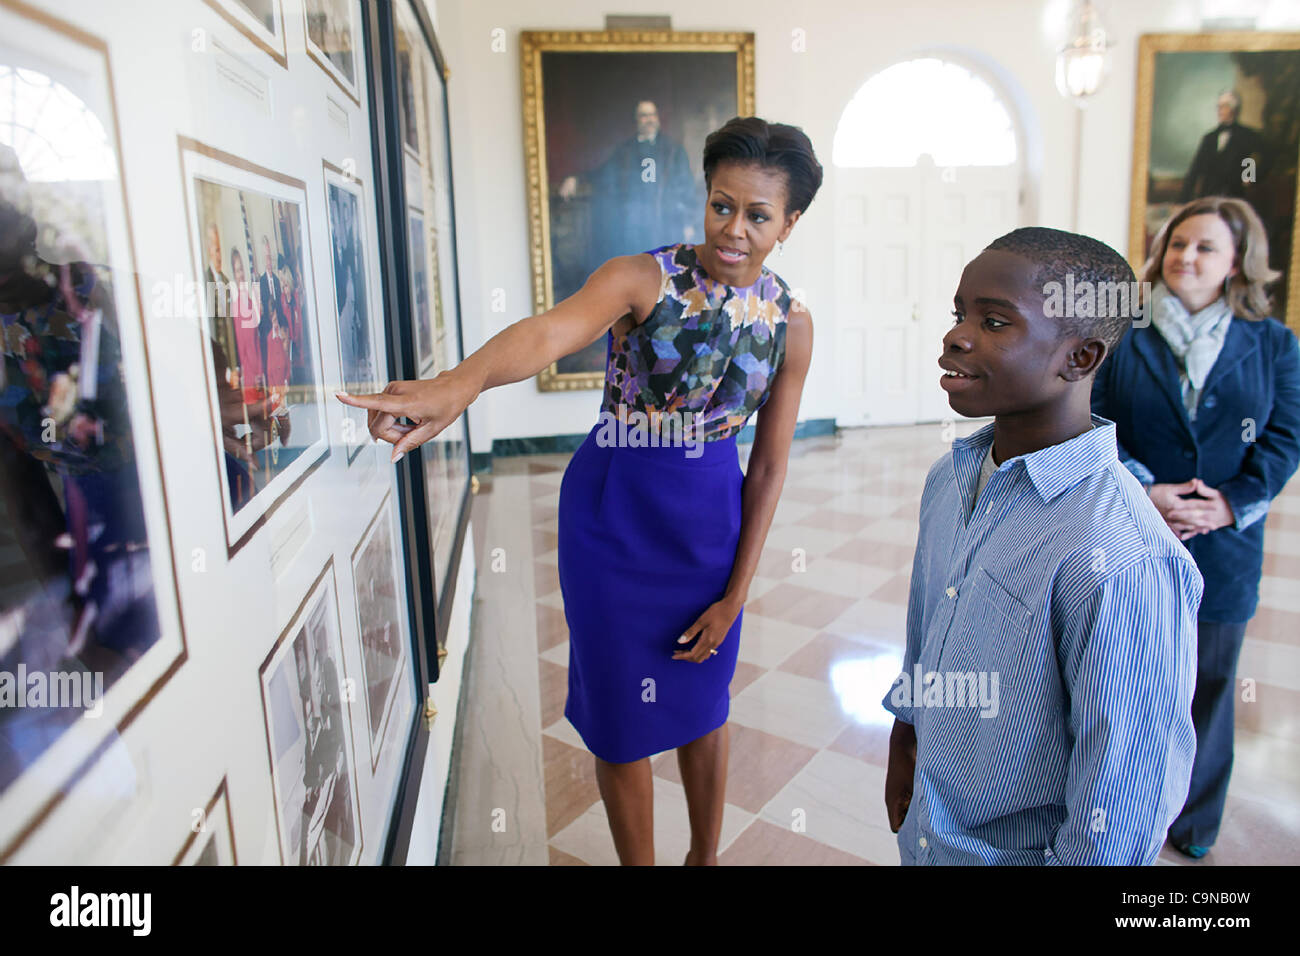 First Lady Michelle Obama shows NFL Super Kid James Gale, 11, historical photos from previous administrations on - Stock Image